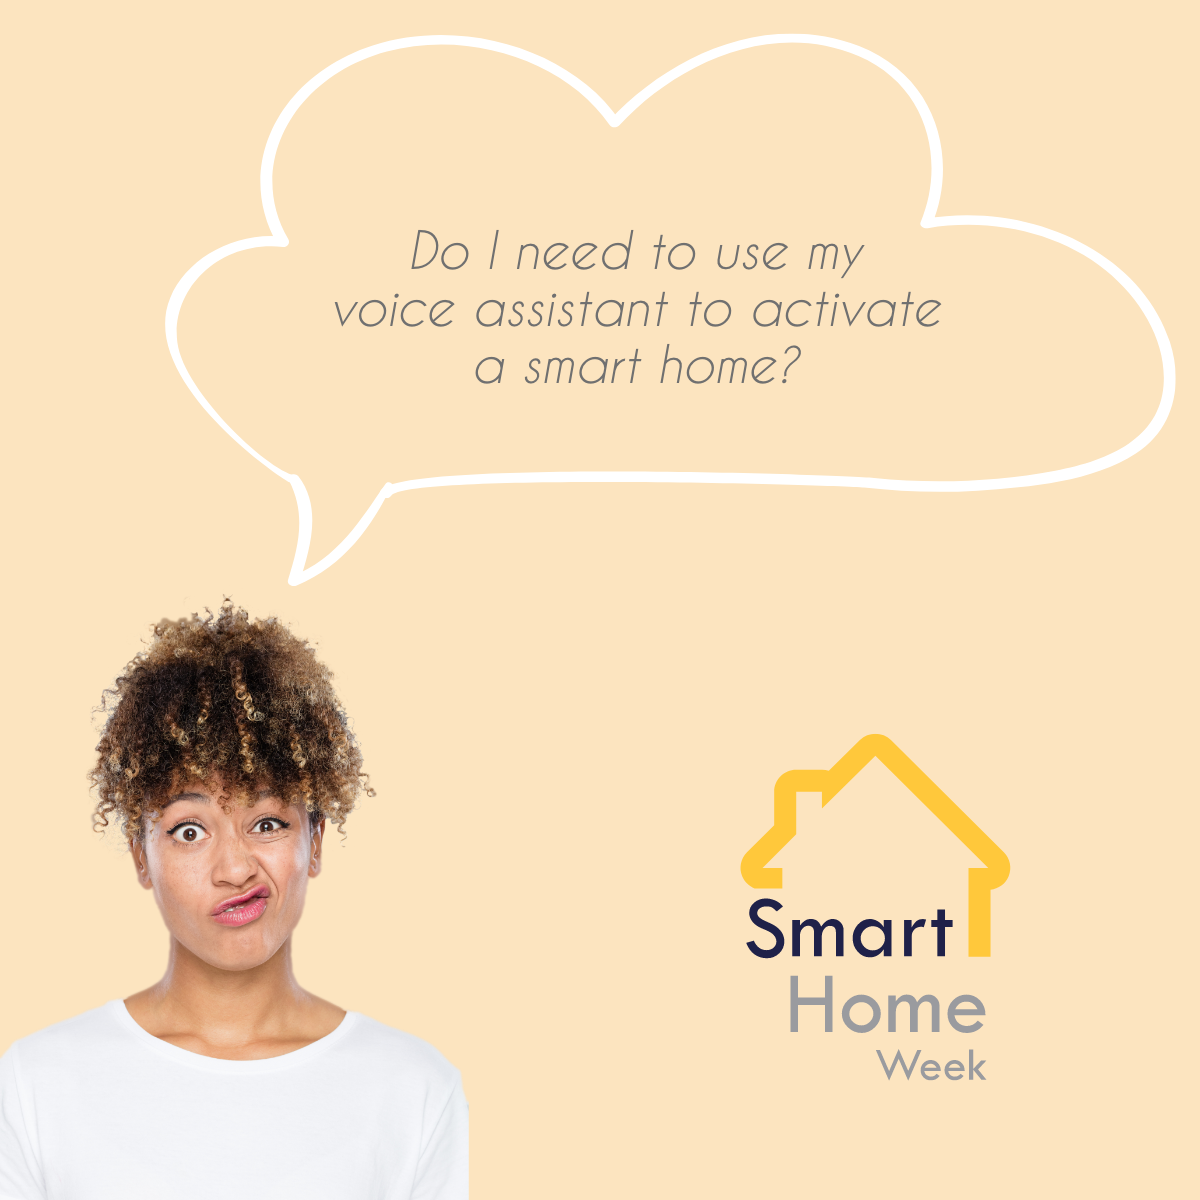 woman looking confused with a speech bubble saying Do I need to use my voice assistant to activate a smart home?